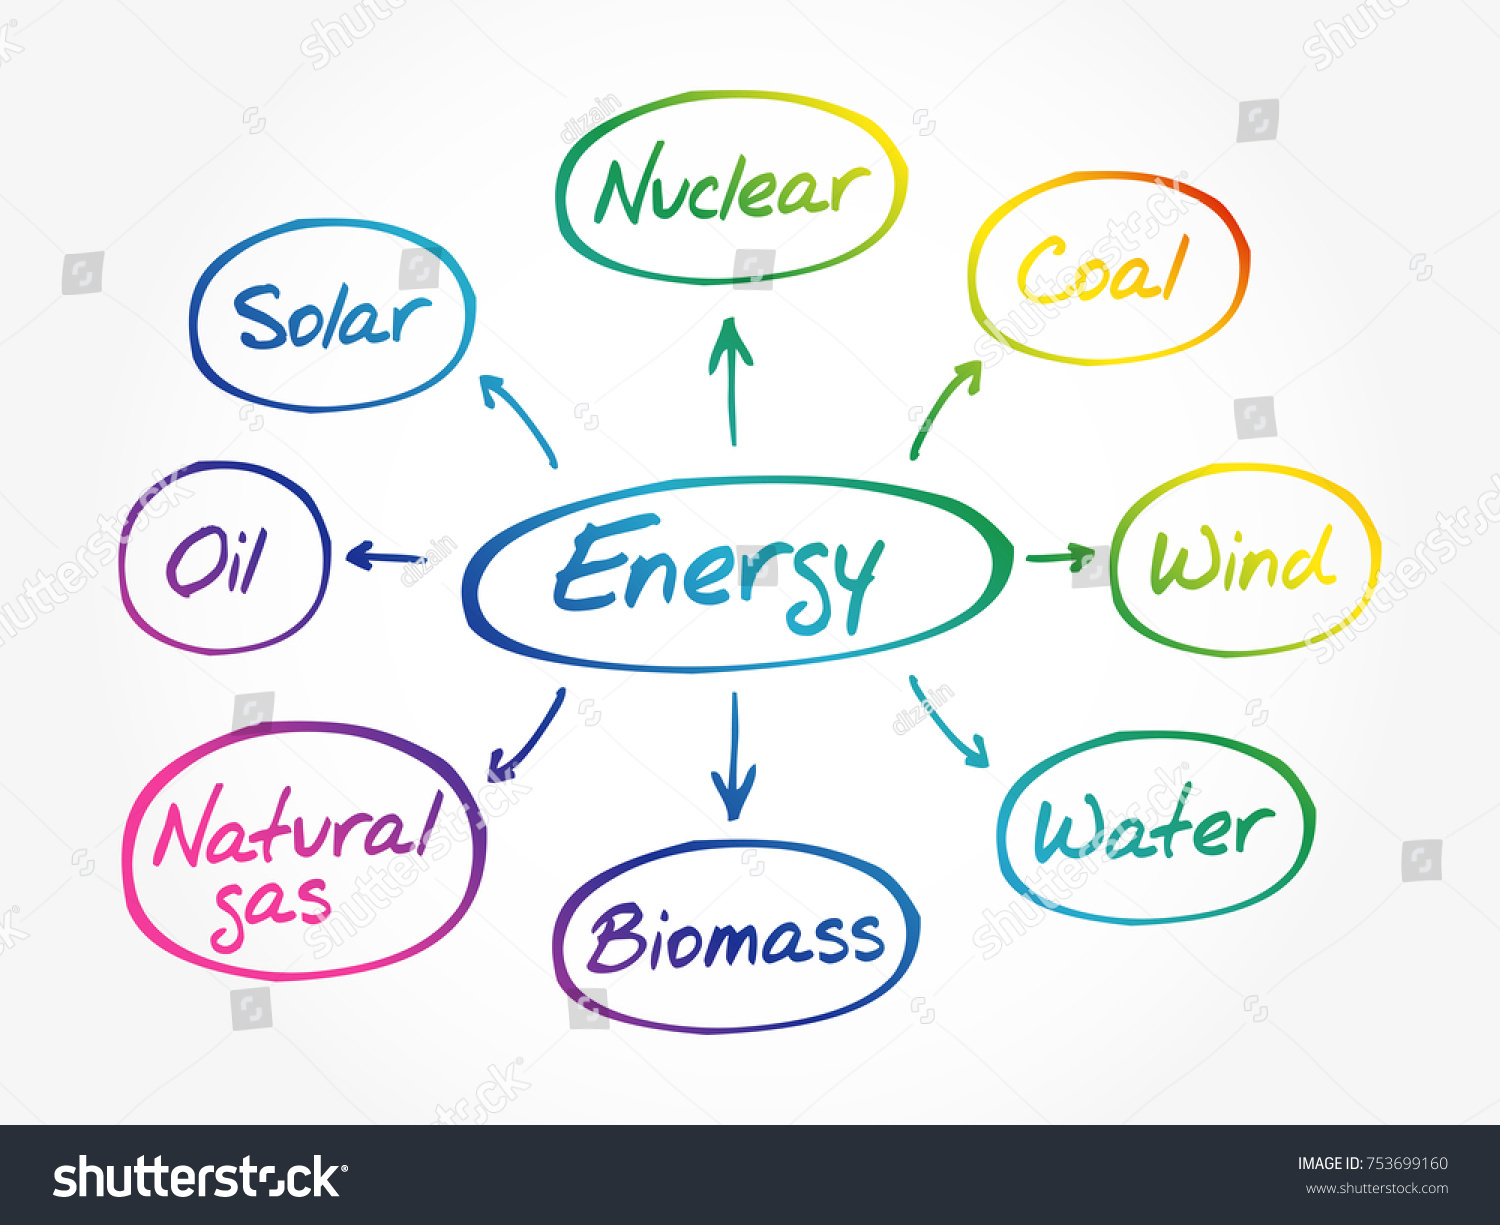 Energy mind map flow chart types stock vector 753699160 shutterstock energy mind map flow chart types of energy generation nvjuhfo Images